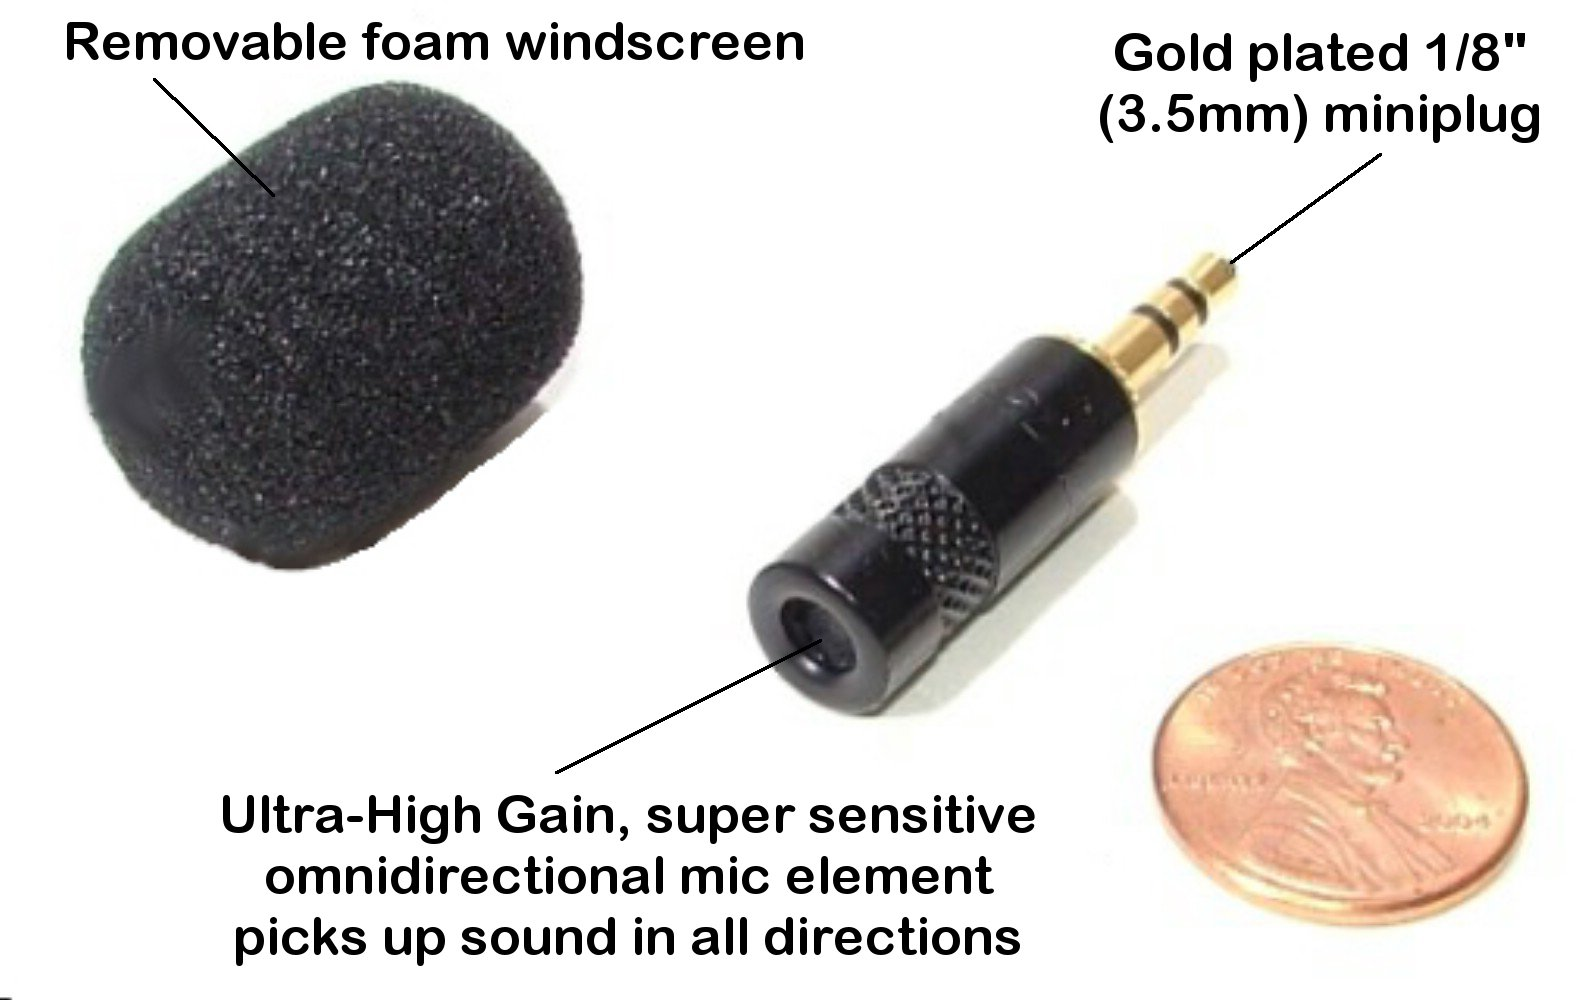 Master Series by Sound Professionals - Ultra-high sensitivity miniature omnidirectional microphone for Steno machines, laptops and digital recorders - Made in USA